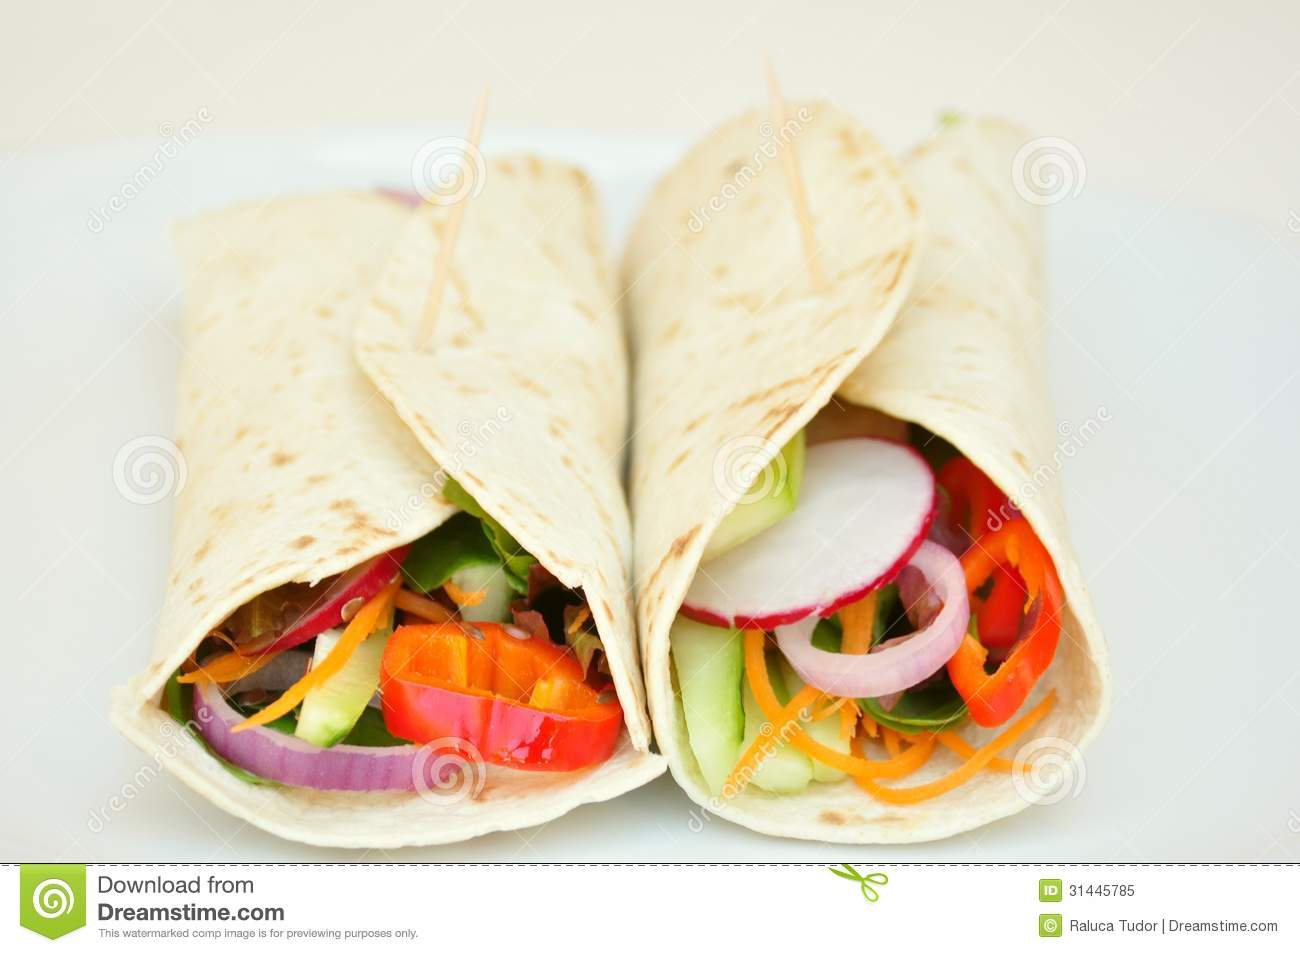 ... vegetarian burritos with tomato, onion, carrots, cucumber, radish